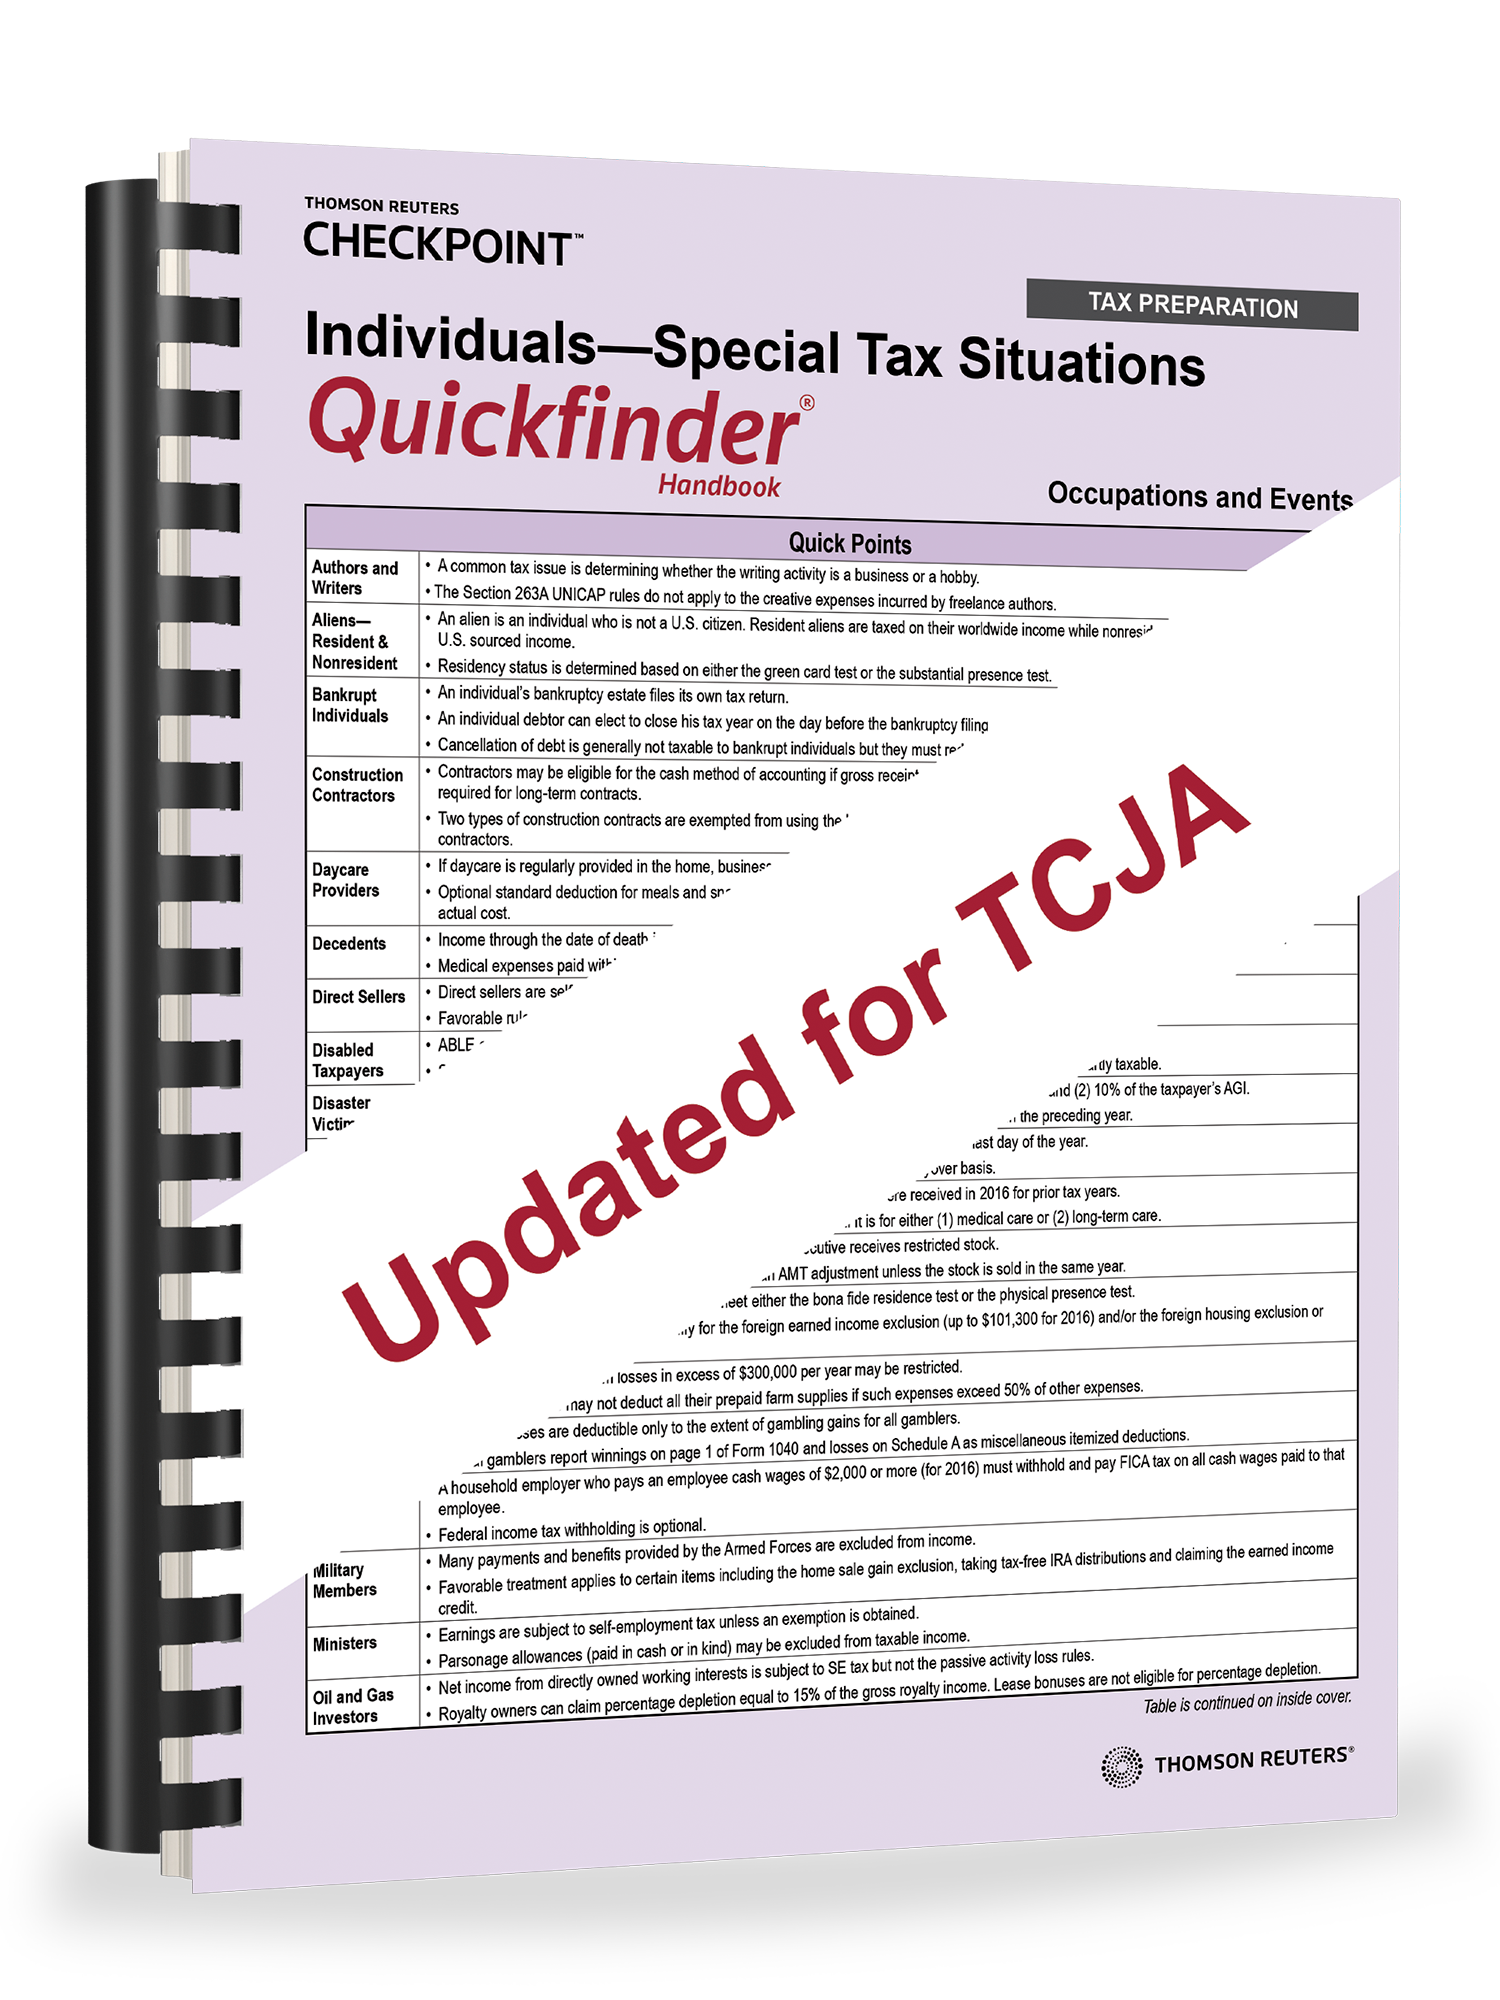 Individuals – Special Tax Situations Quickfinder Handbook (2018) - #3840